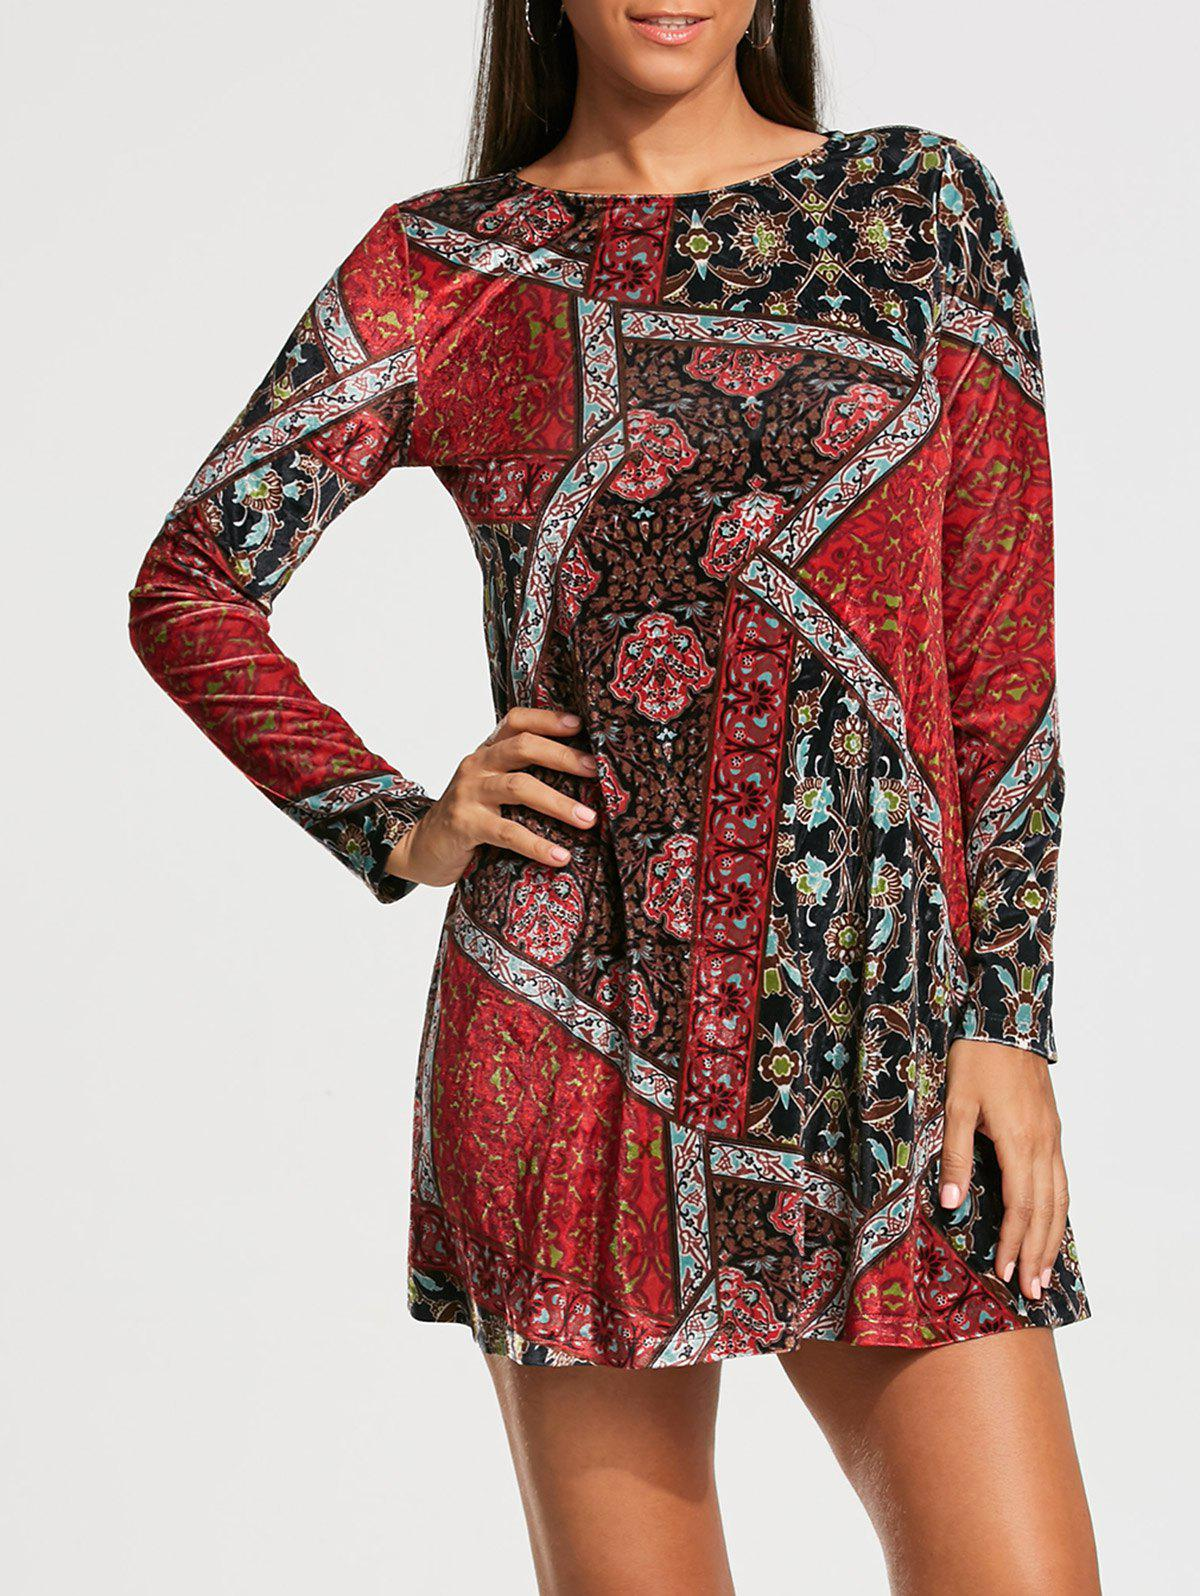 Patchwork Print Long Sleeve Tunic Shift DressWOMEN<br><br>Size: XL; Color: COLORMIX; Style: Vintage; Material: Polyester; Silhouette: Shift; Dress Type: Tunic Dress; Dresses Length: Mini; Neckline: Round Collar; Sleeve Length: Long Sleeves; Waist: Natural; Pattern Type: Patchwork,Print; With Belt: No; Season: Fall,Spring,Summer; Weight: 0.4000kg; Package Contents: 1 x Dress; Occasion: Beach and Summer,Casual,Going Out;